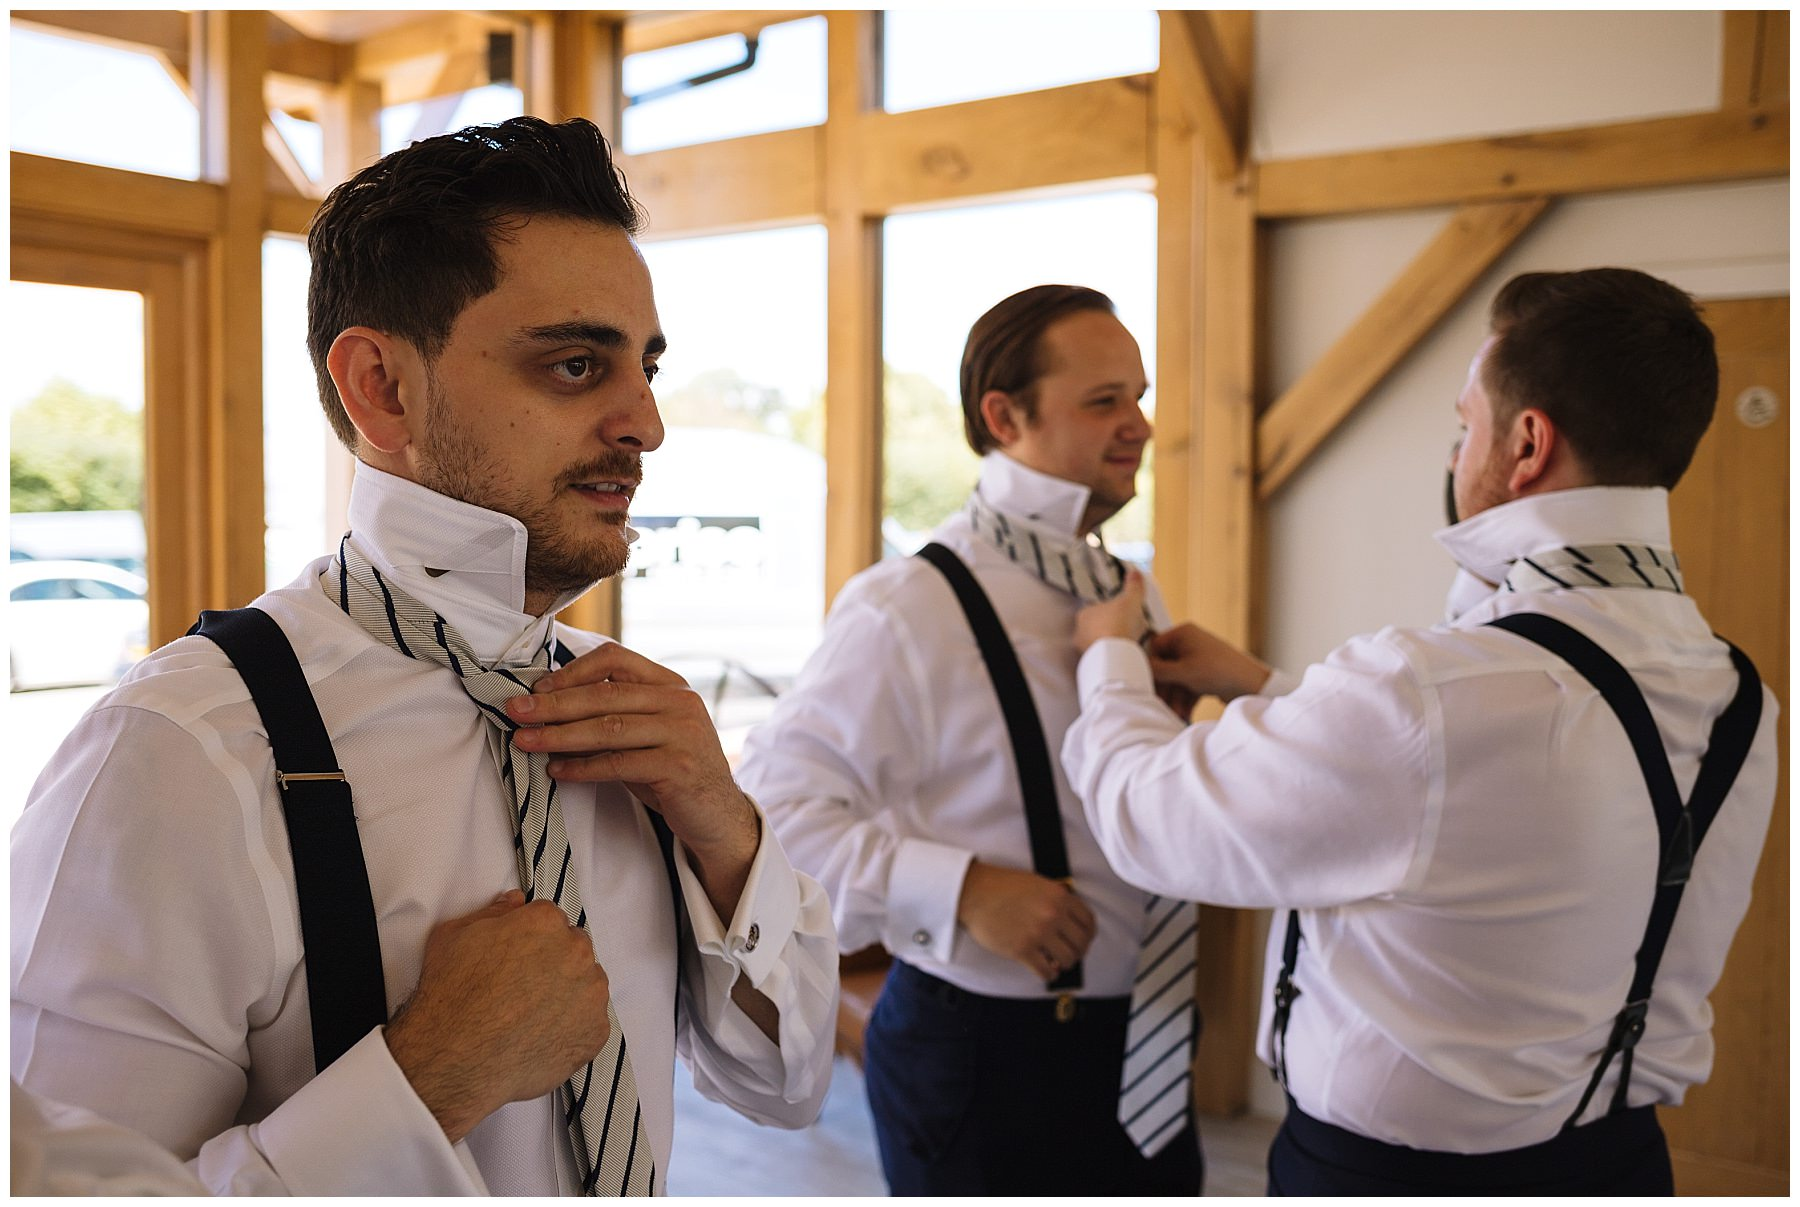 Groom and groomsmen fix their ties before wedding ceremony